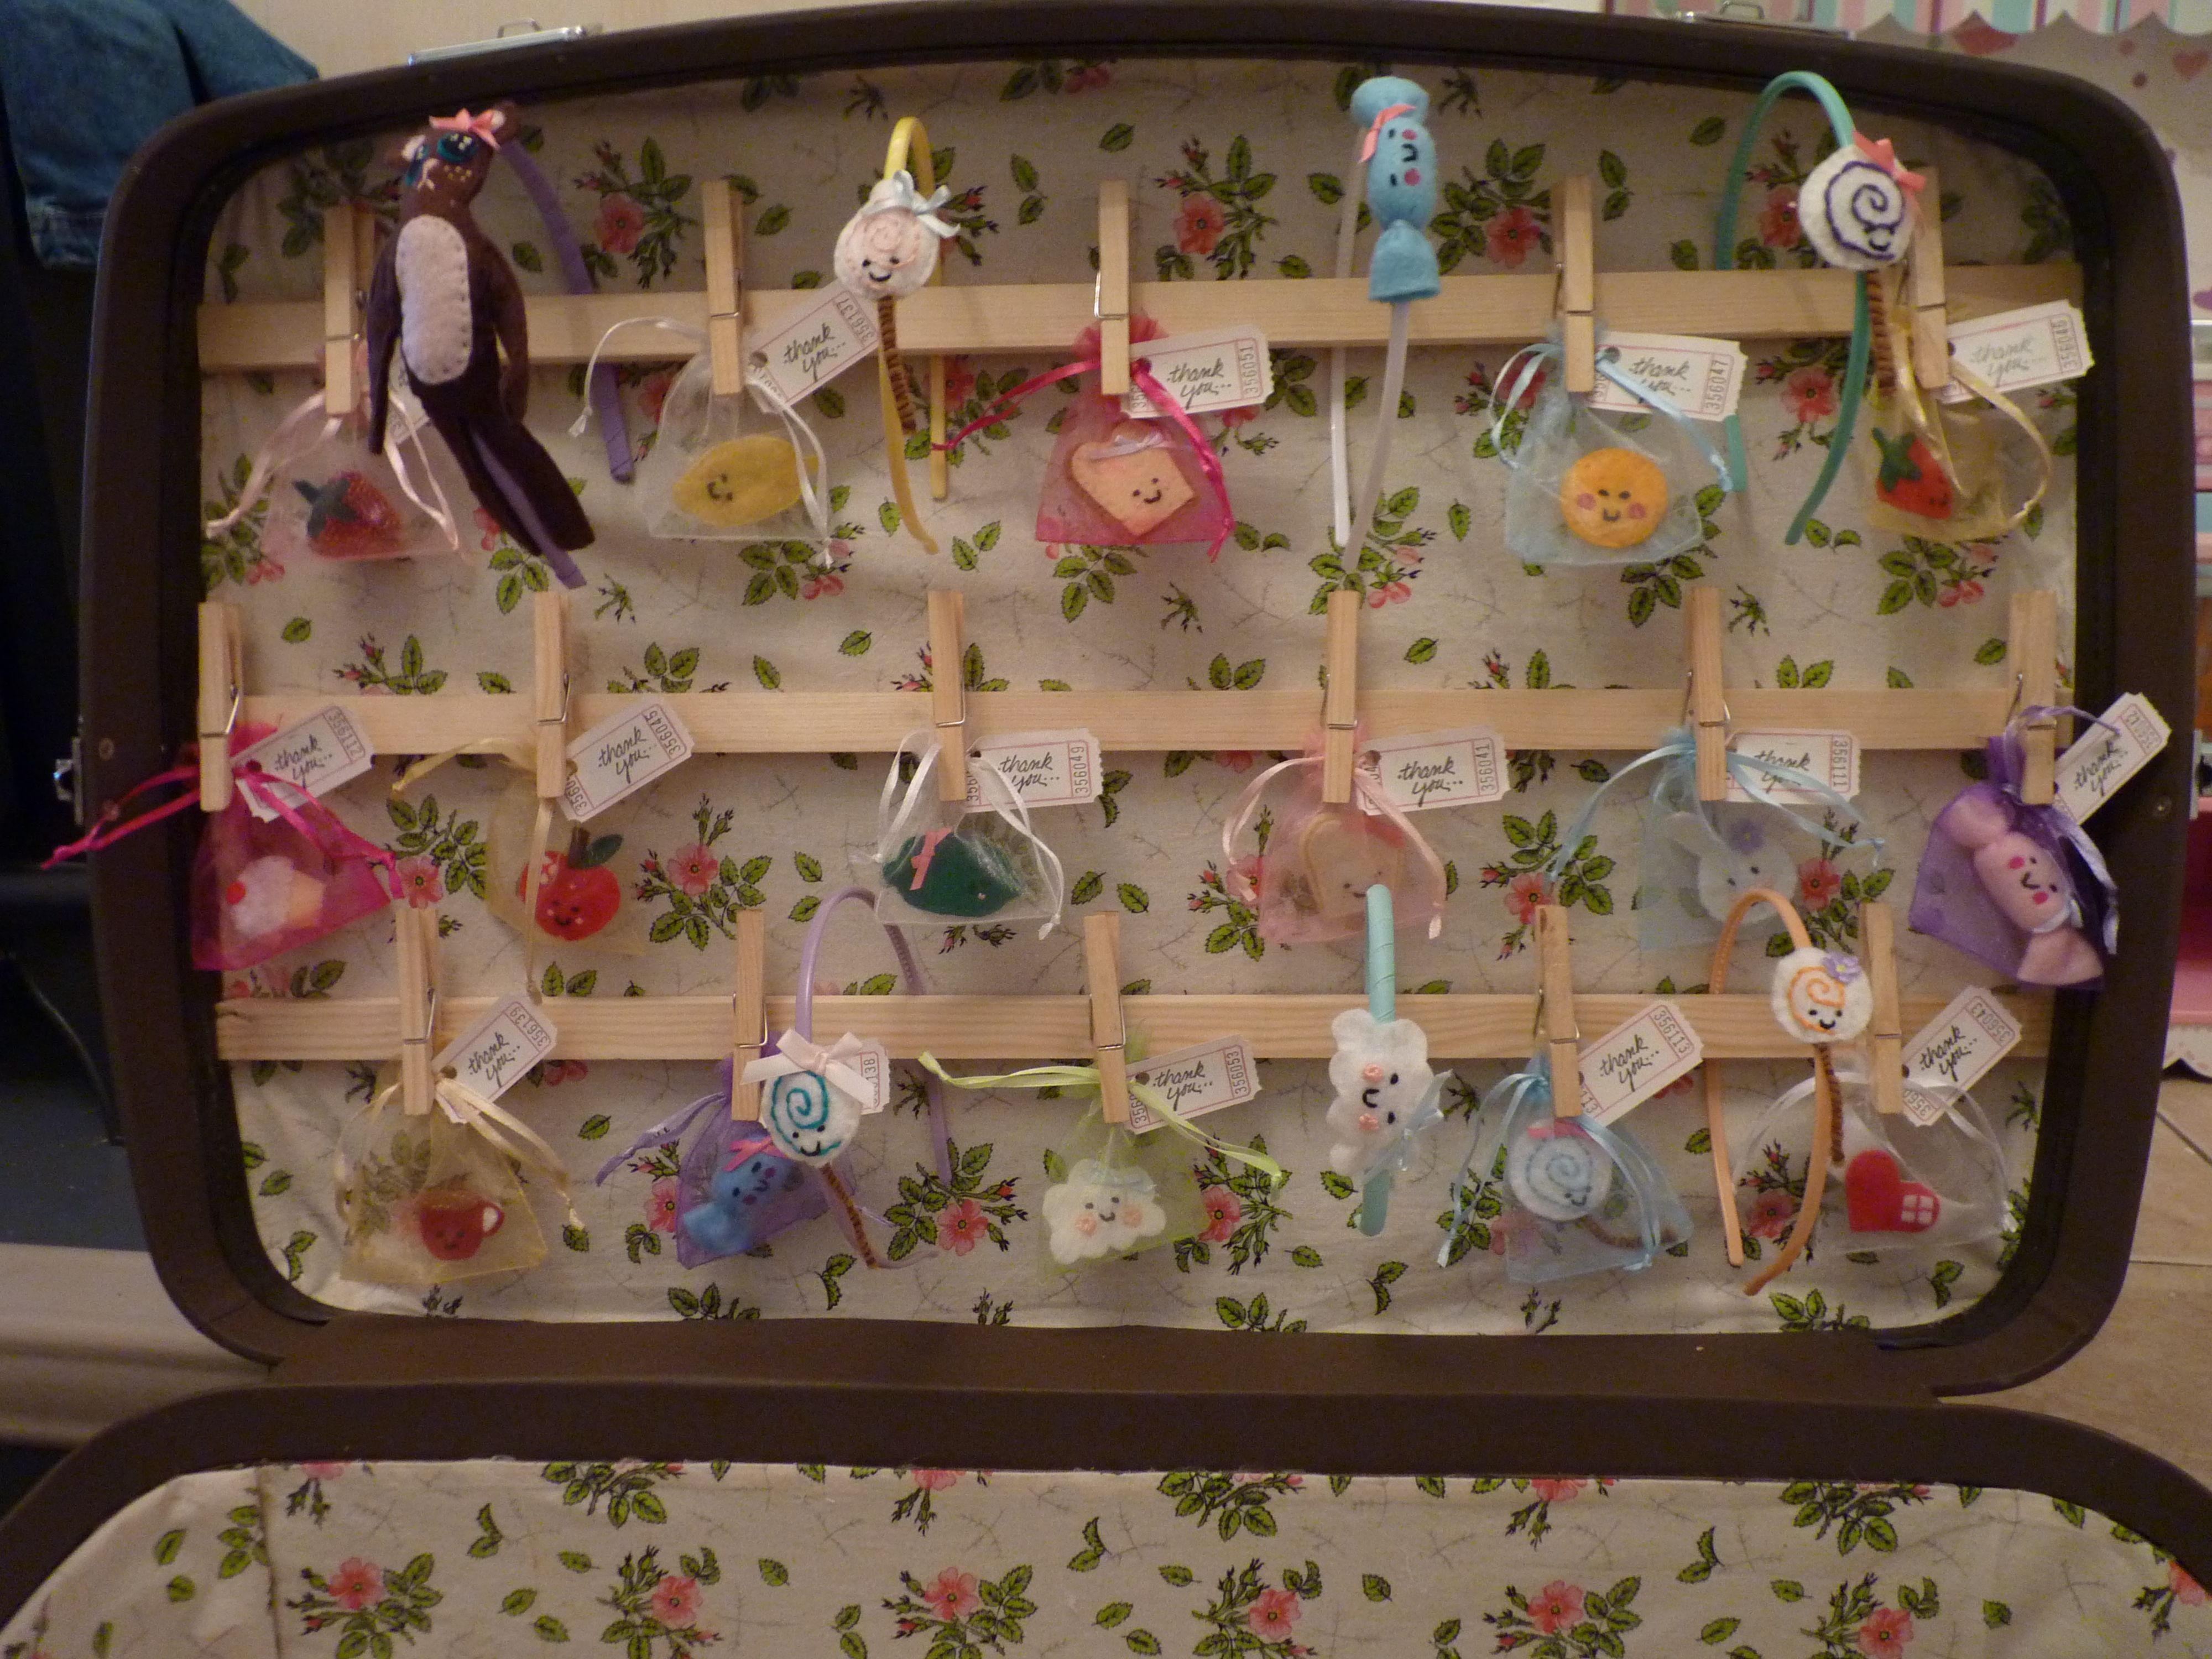 Vintage Suitcase Shelves For Sale I Needed A Display Cabinet For Craft Fairs So I